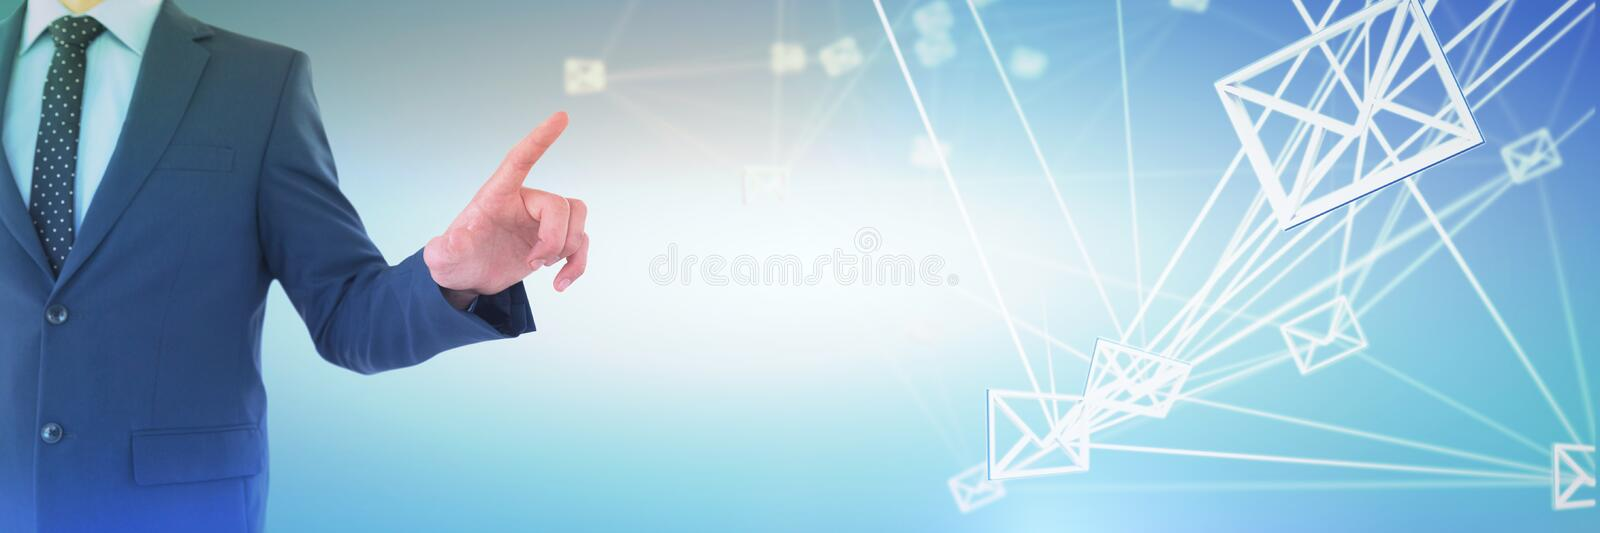 Composite image of mid section of businessman selecting on imaginary screen. Mid section of businessman selecting on imaginary screen against abstract blue stock photography